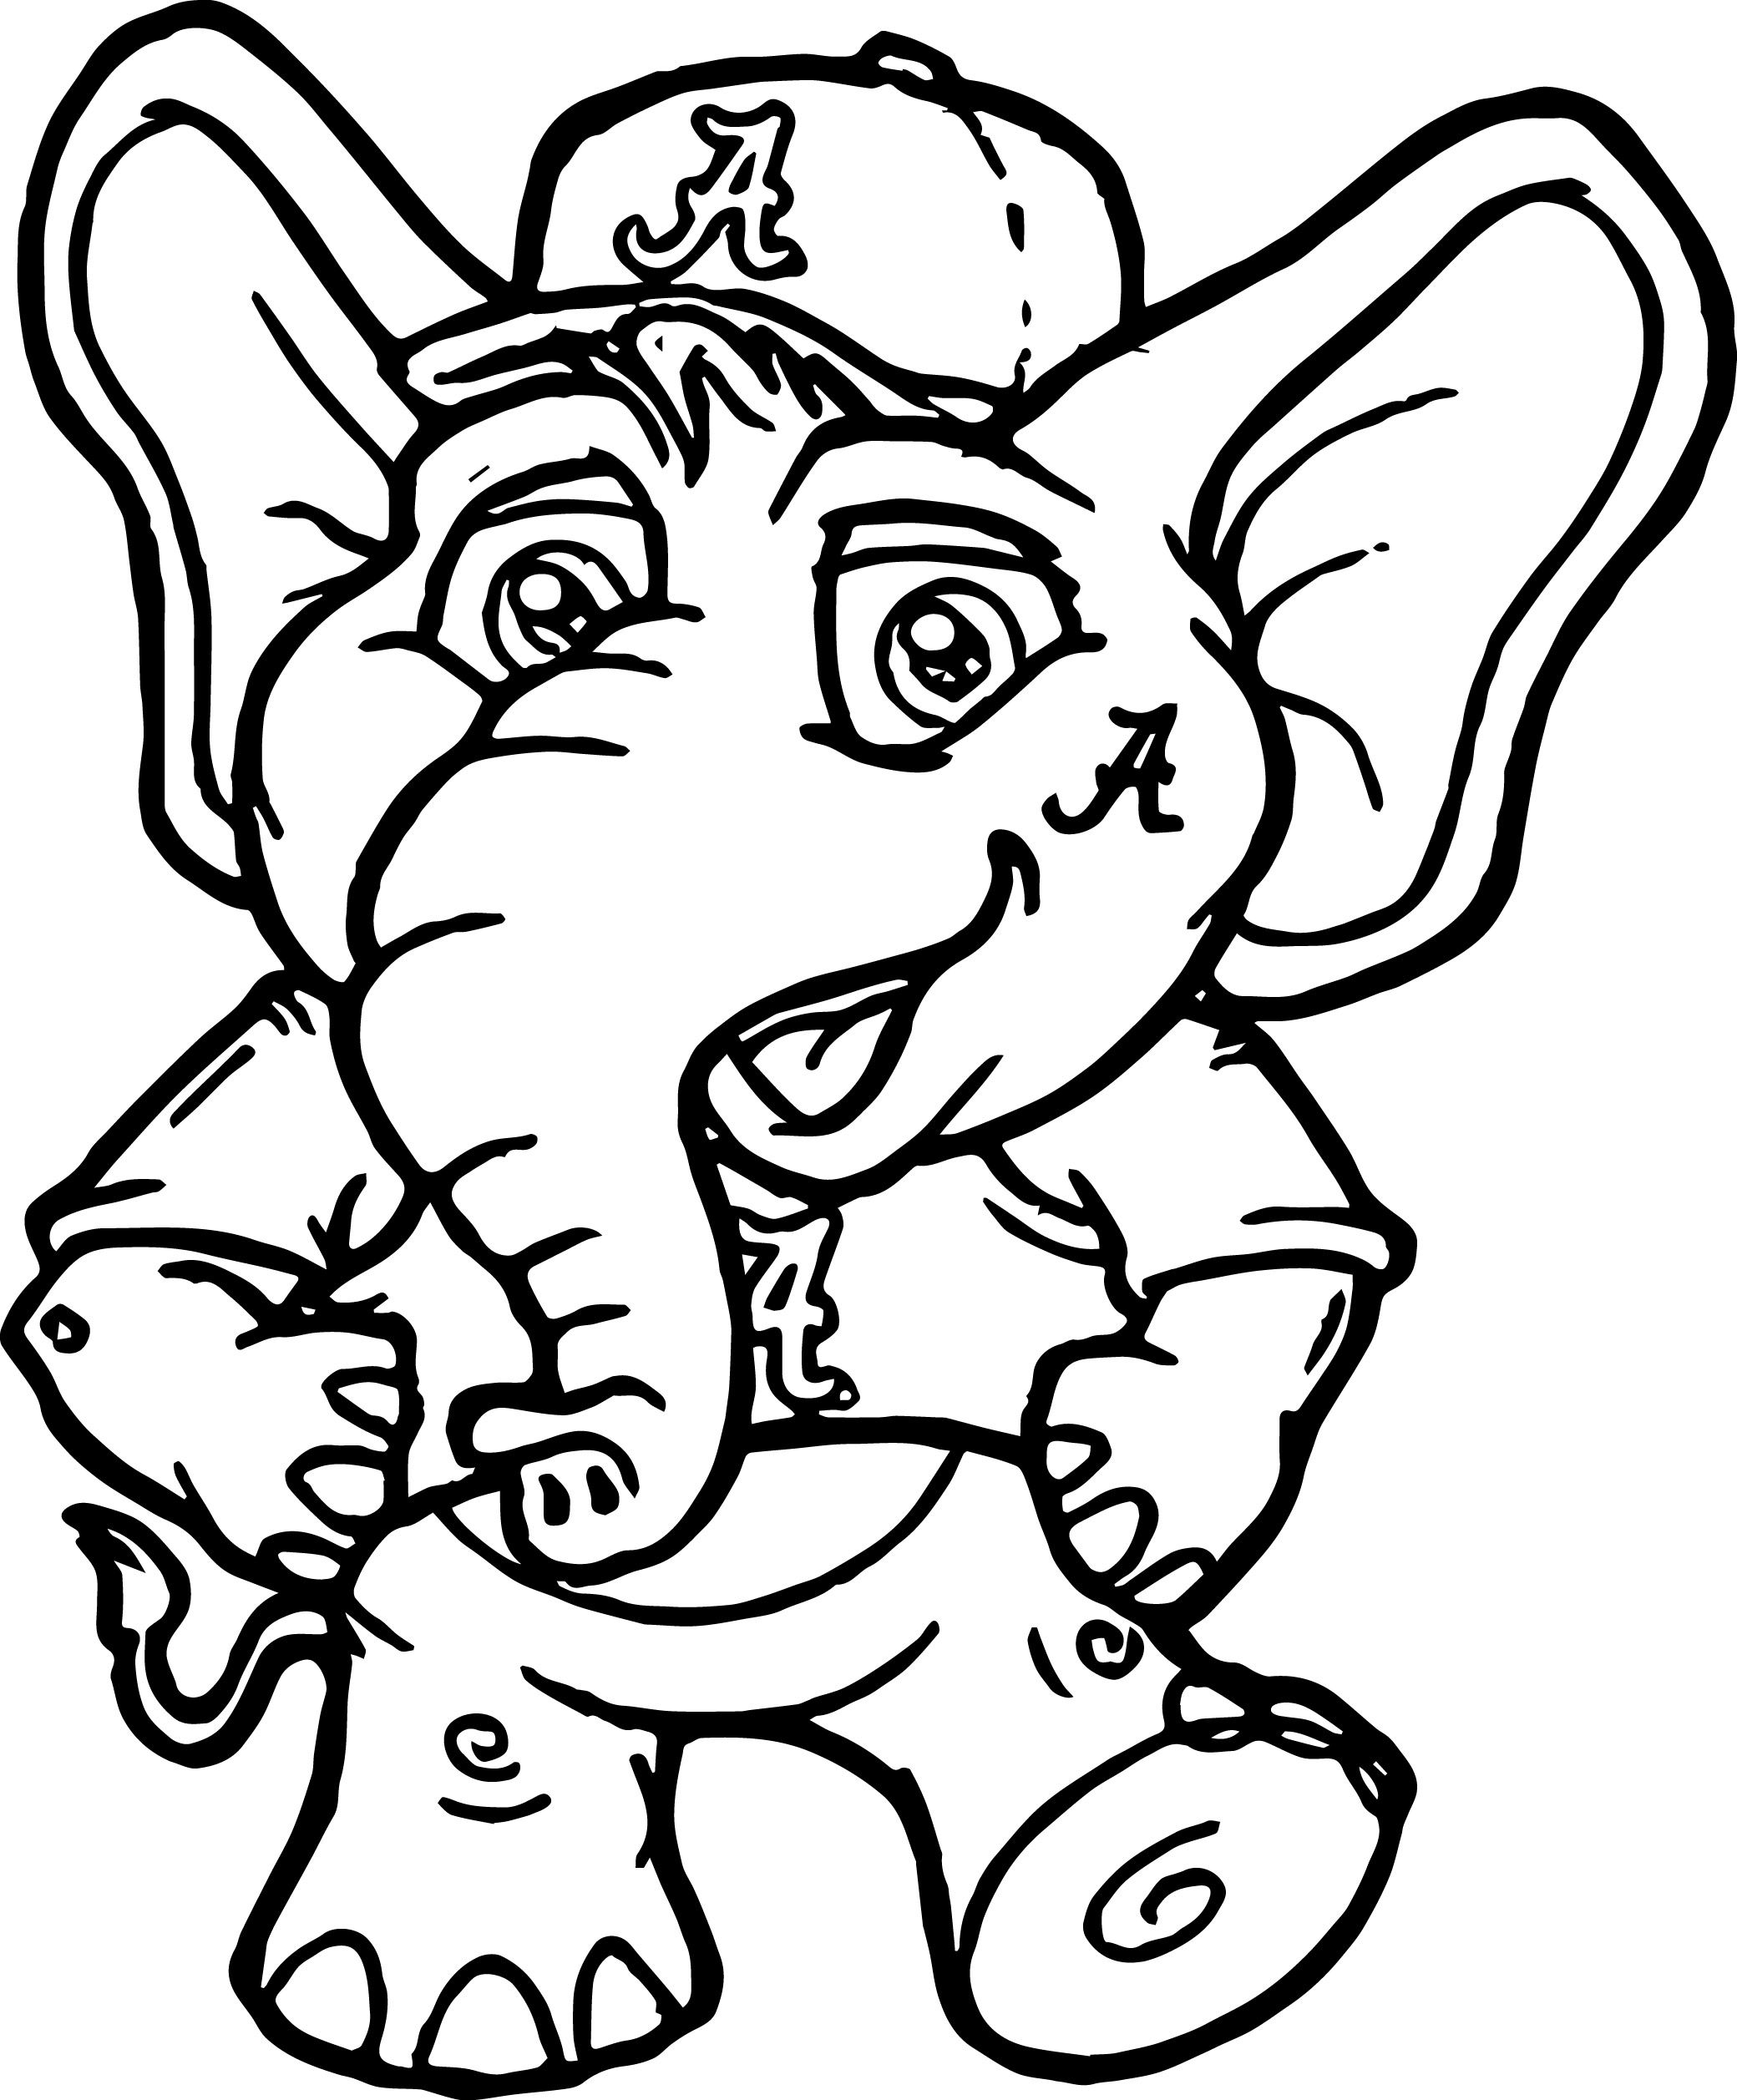 Tennessee Vols Coloring Pages At Getdrawings